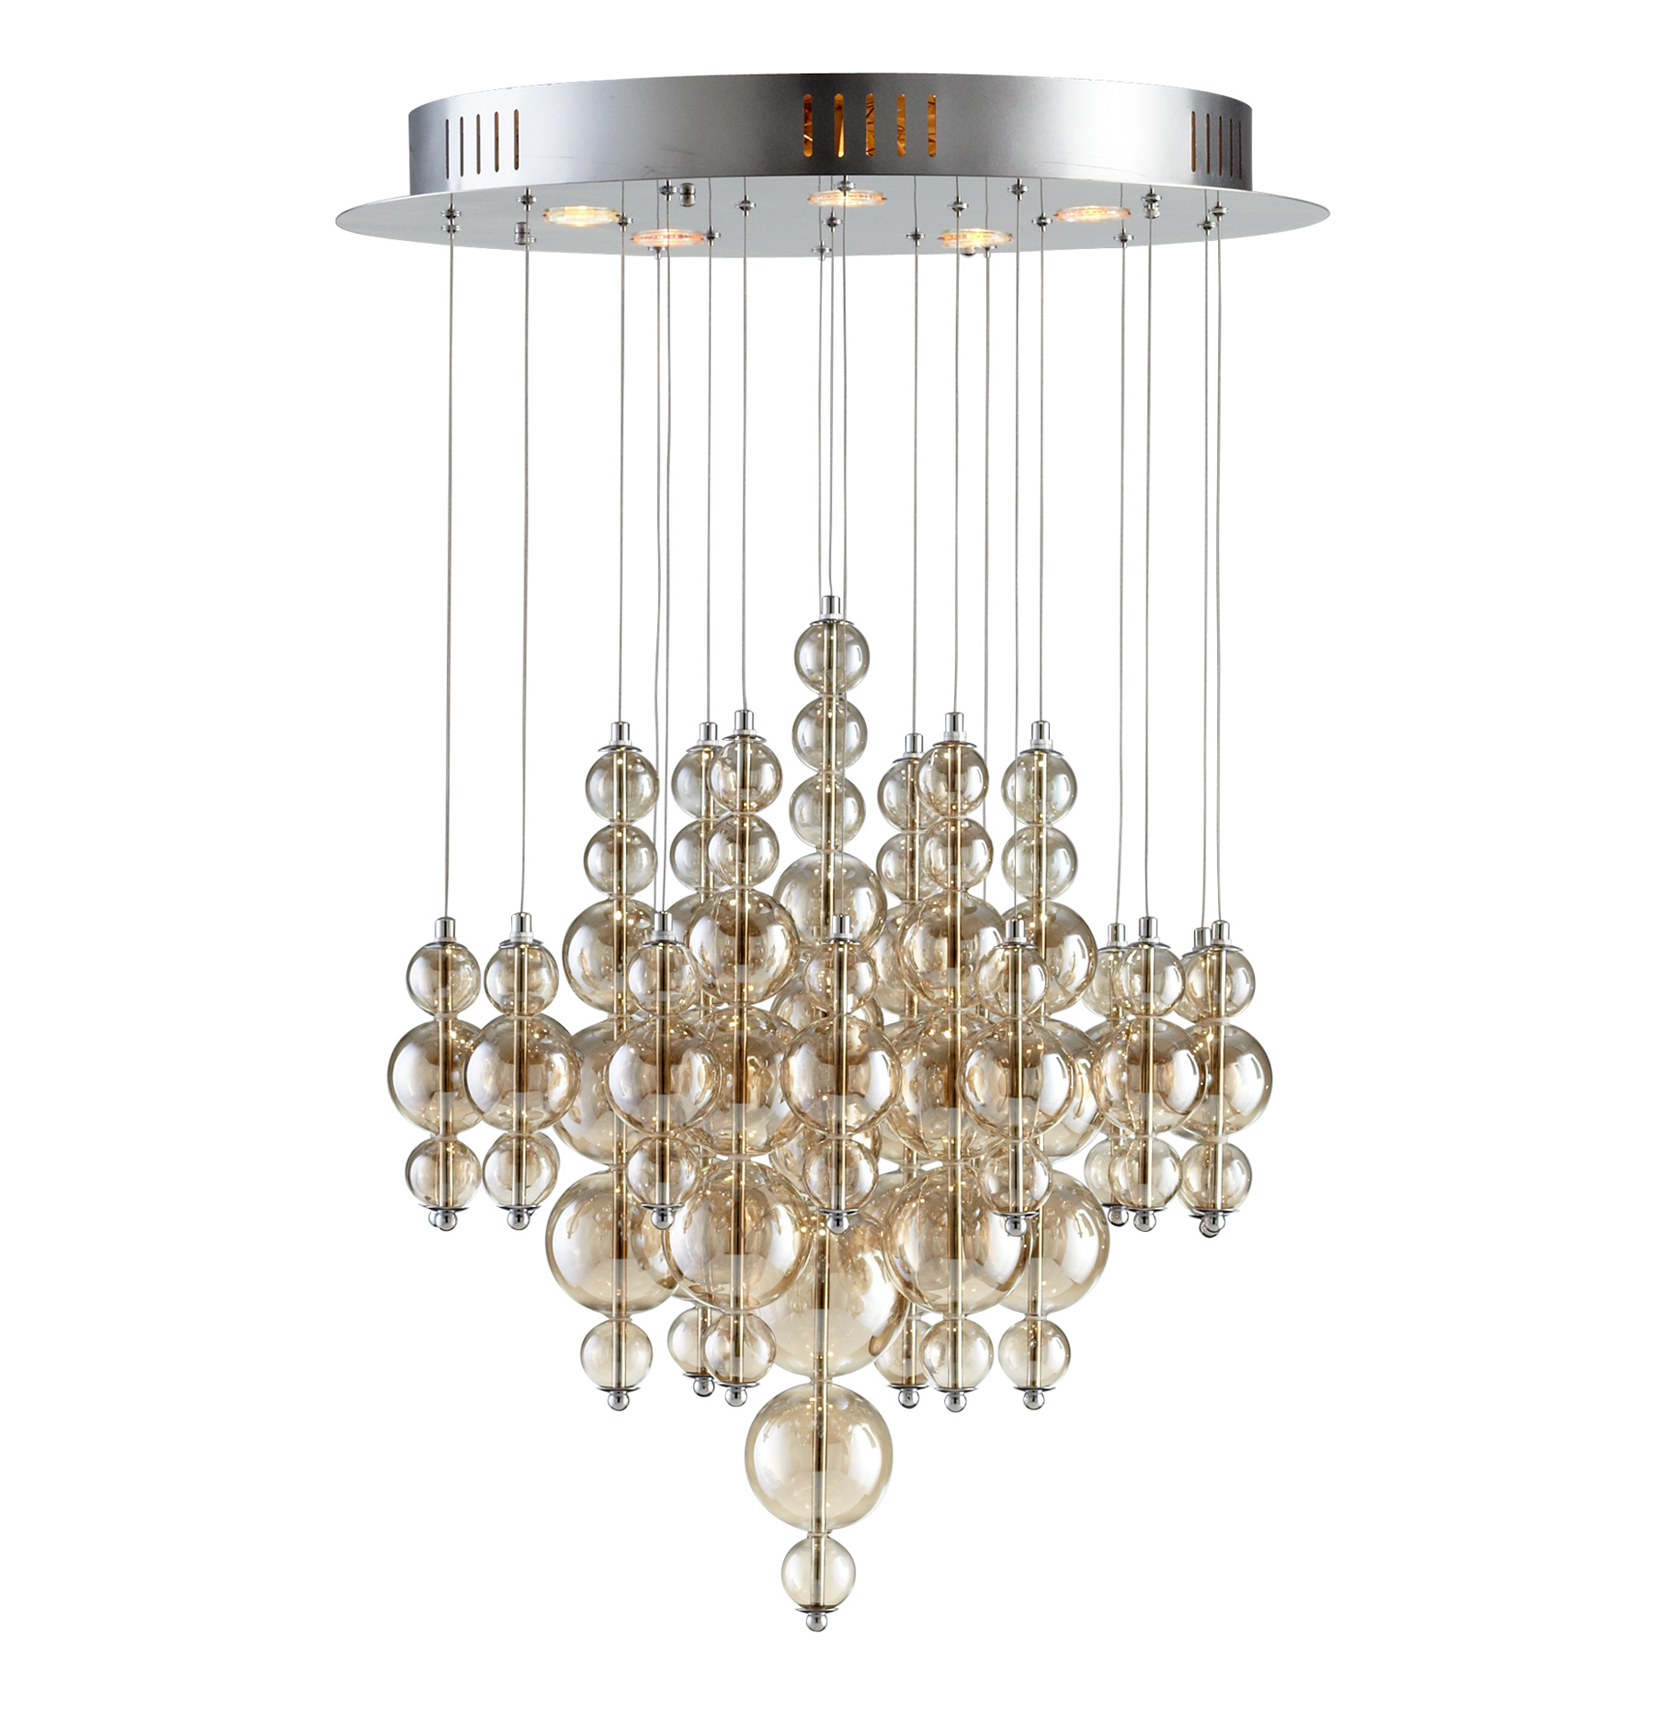 Bubbles Smokey Brown Glass Balls Murano Style Ceiling Mount - 5 Light